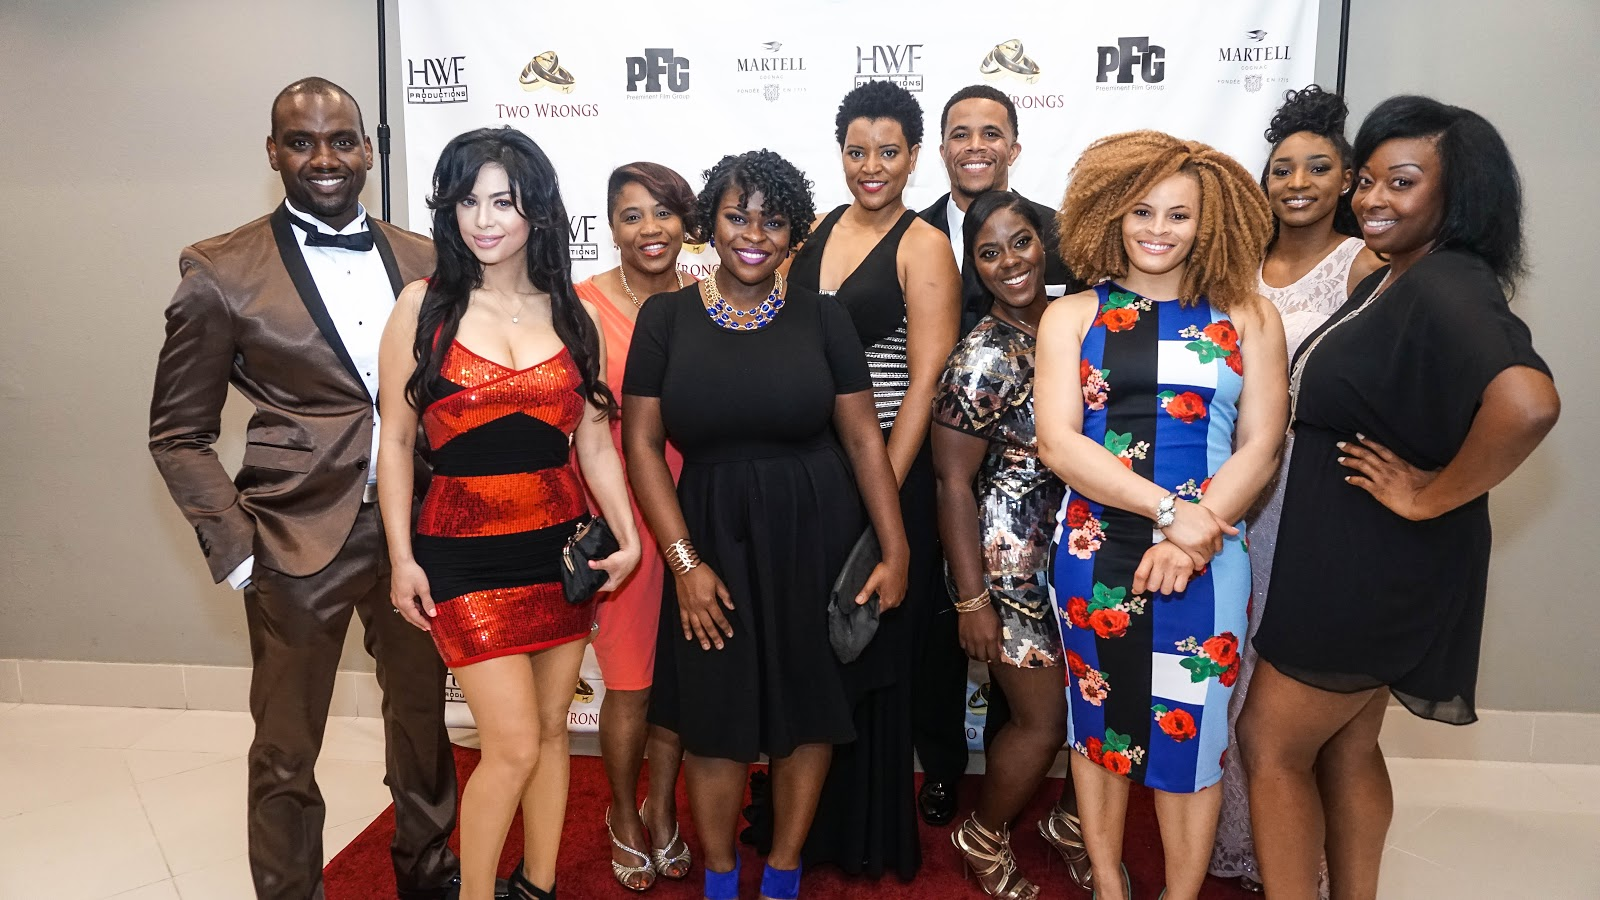 """Schelle Purcell & Preeminent Film Group Present the """"Two Wrongs"""" Red Carpet Premiere Experience"""